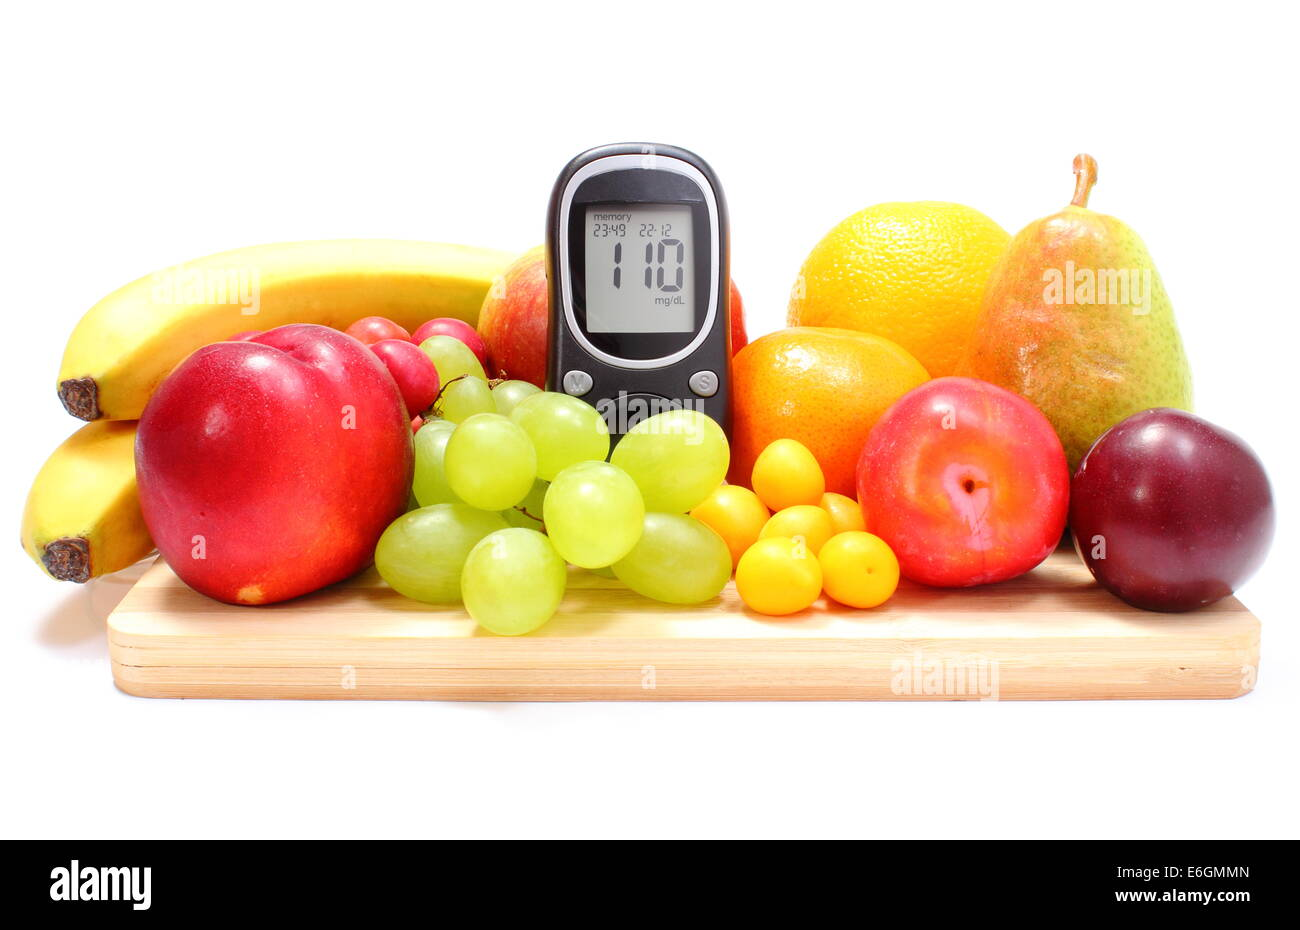 Glucose meter and fresh ripe fruits lying on wooden cutting board, concept for healthy eating and diabetes. Isolated - Stock Image